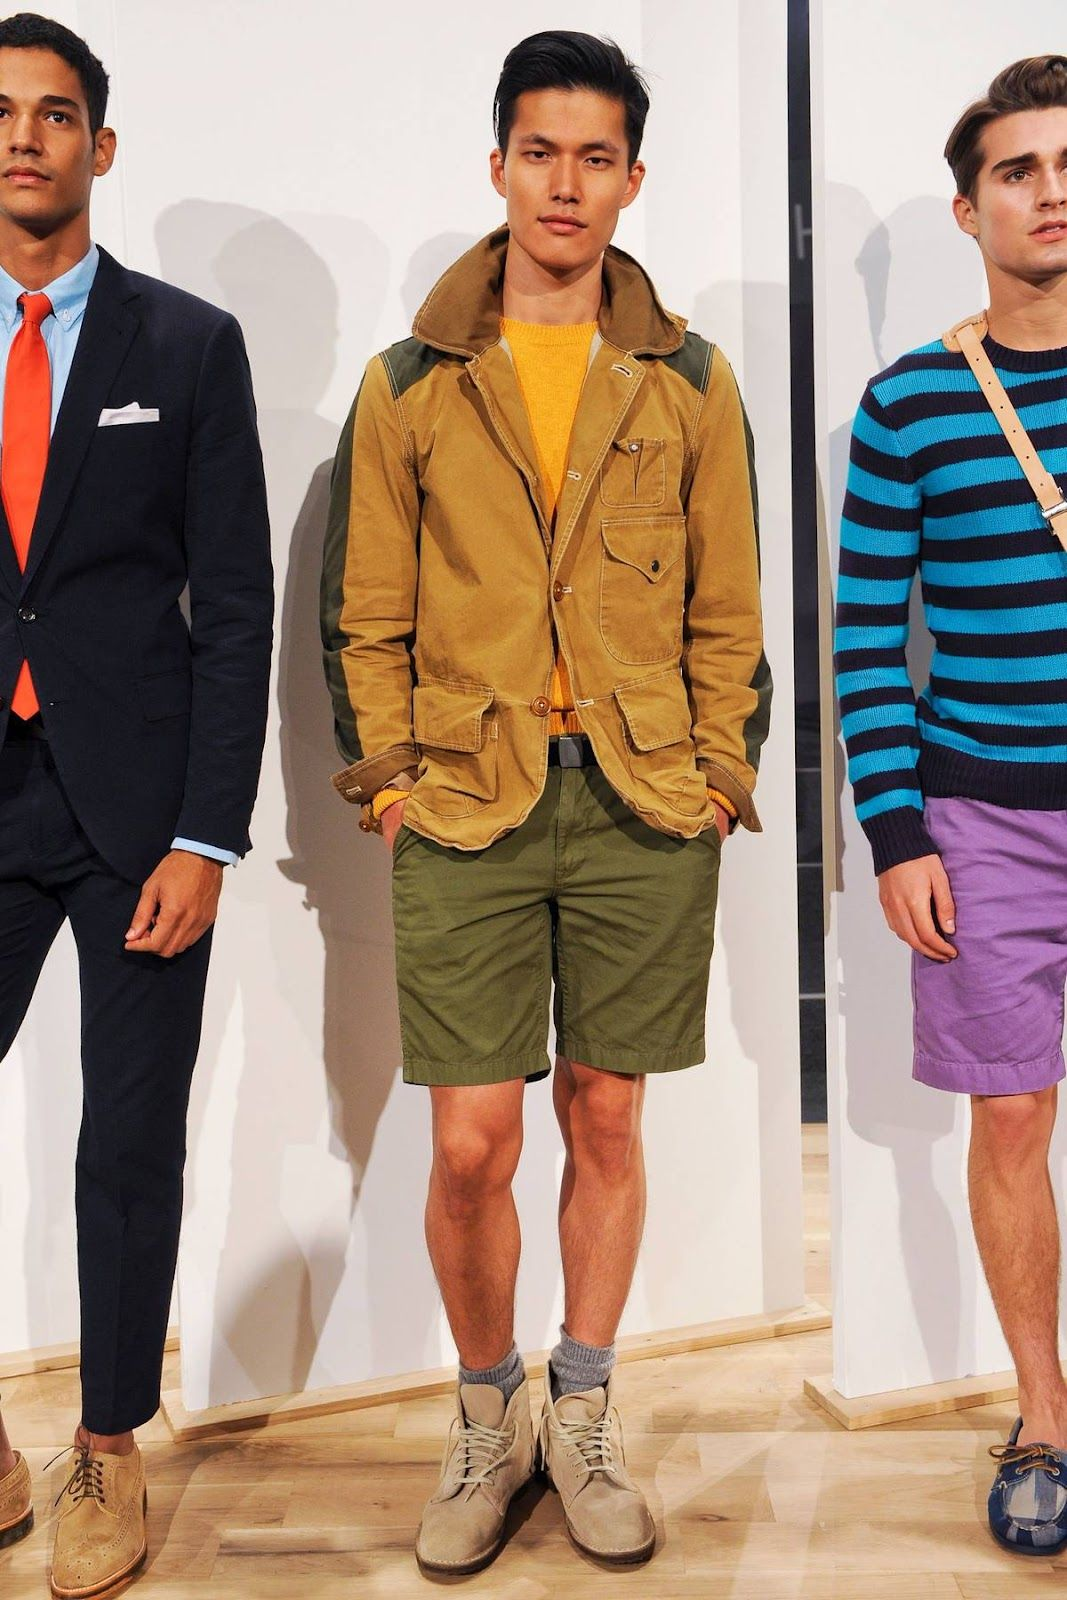 Standard Deviation - Fashion. Design. Culture. Art. Myko.: J. Crew Spring / Summer 2013 #Menswear Presentation #nyfw